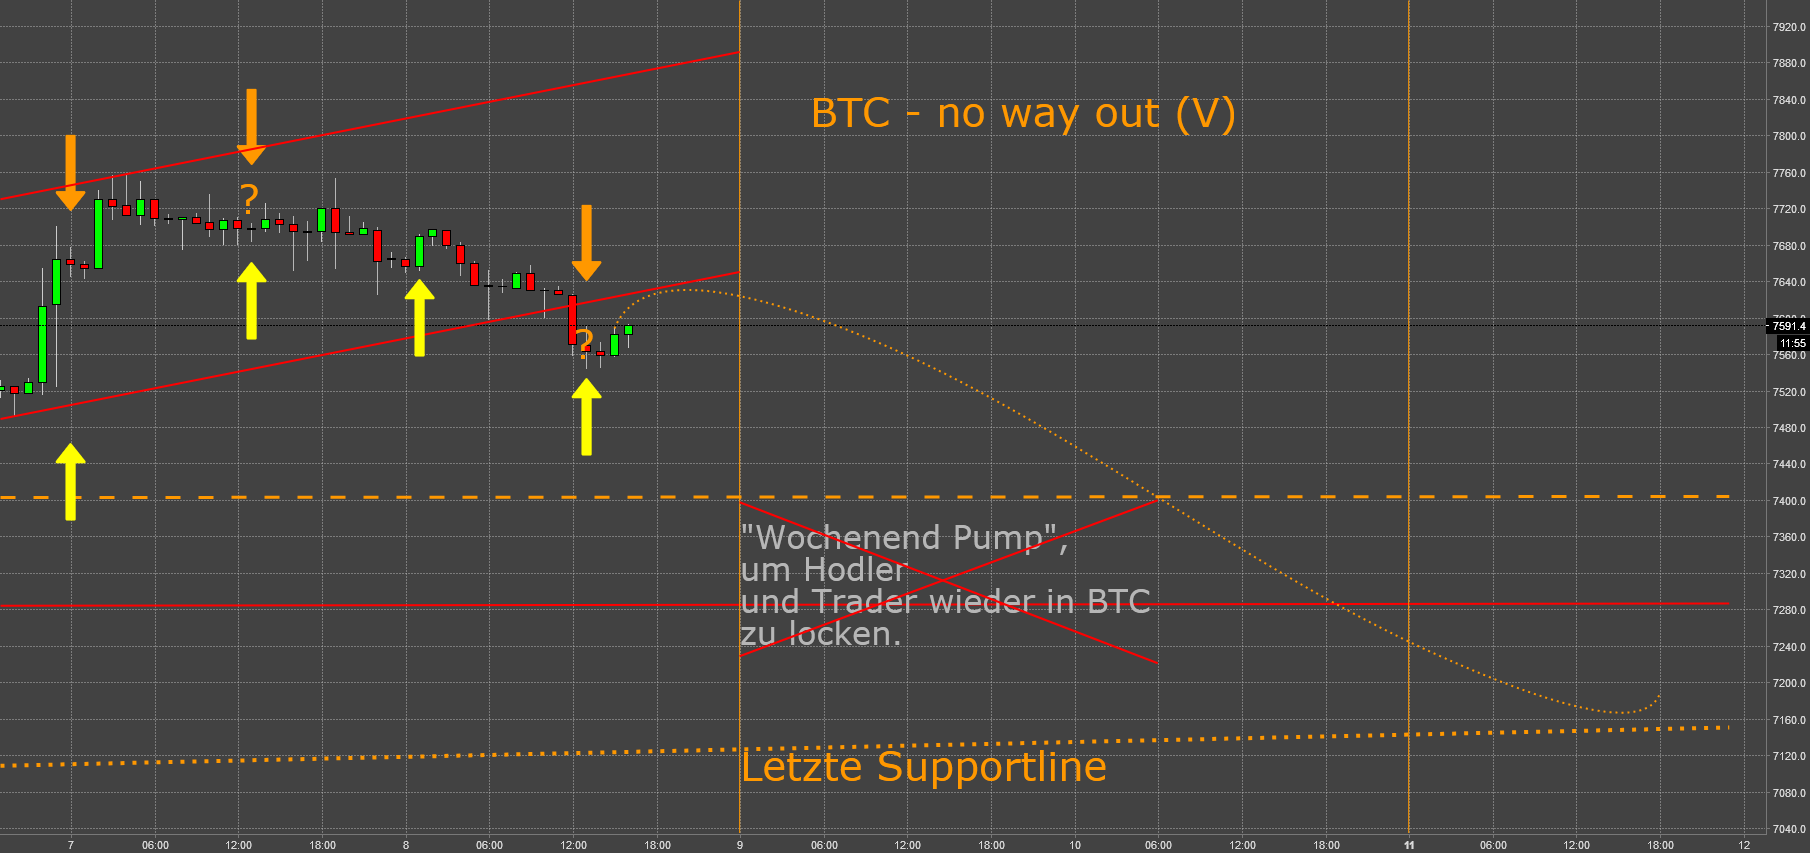 BTC - no way out (V): Trading Volumen bricht ein